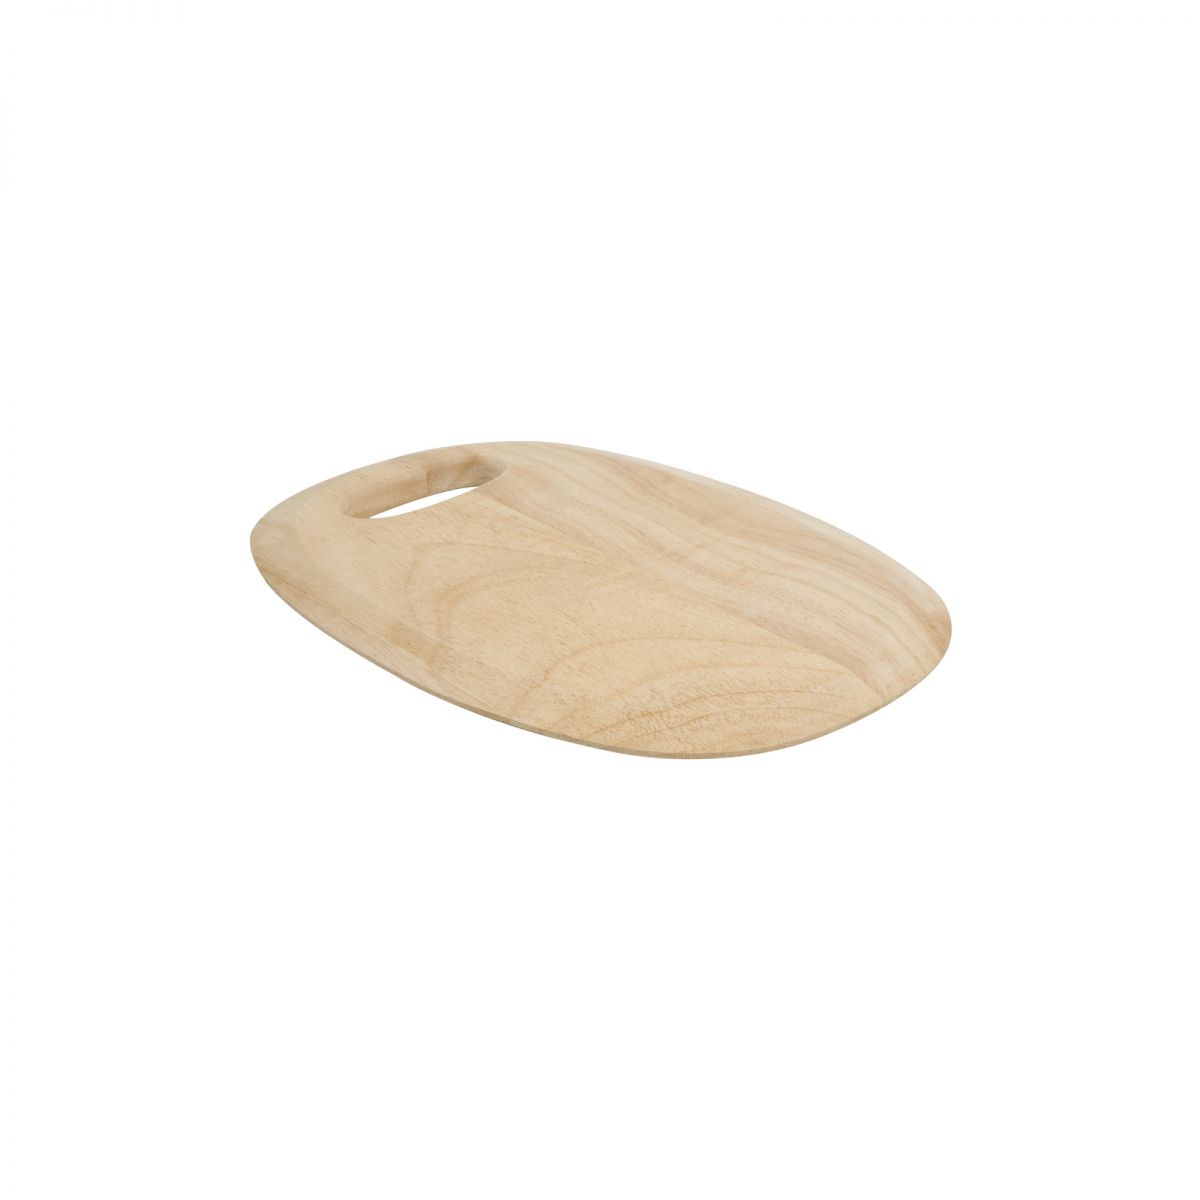 T&G Small Surf Board - Hevea